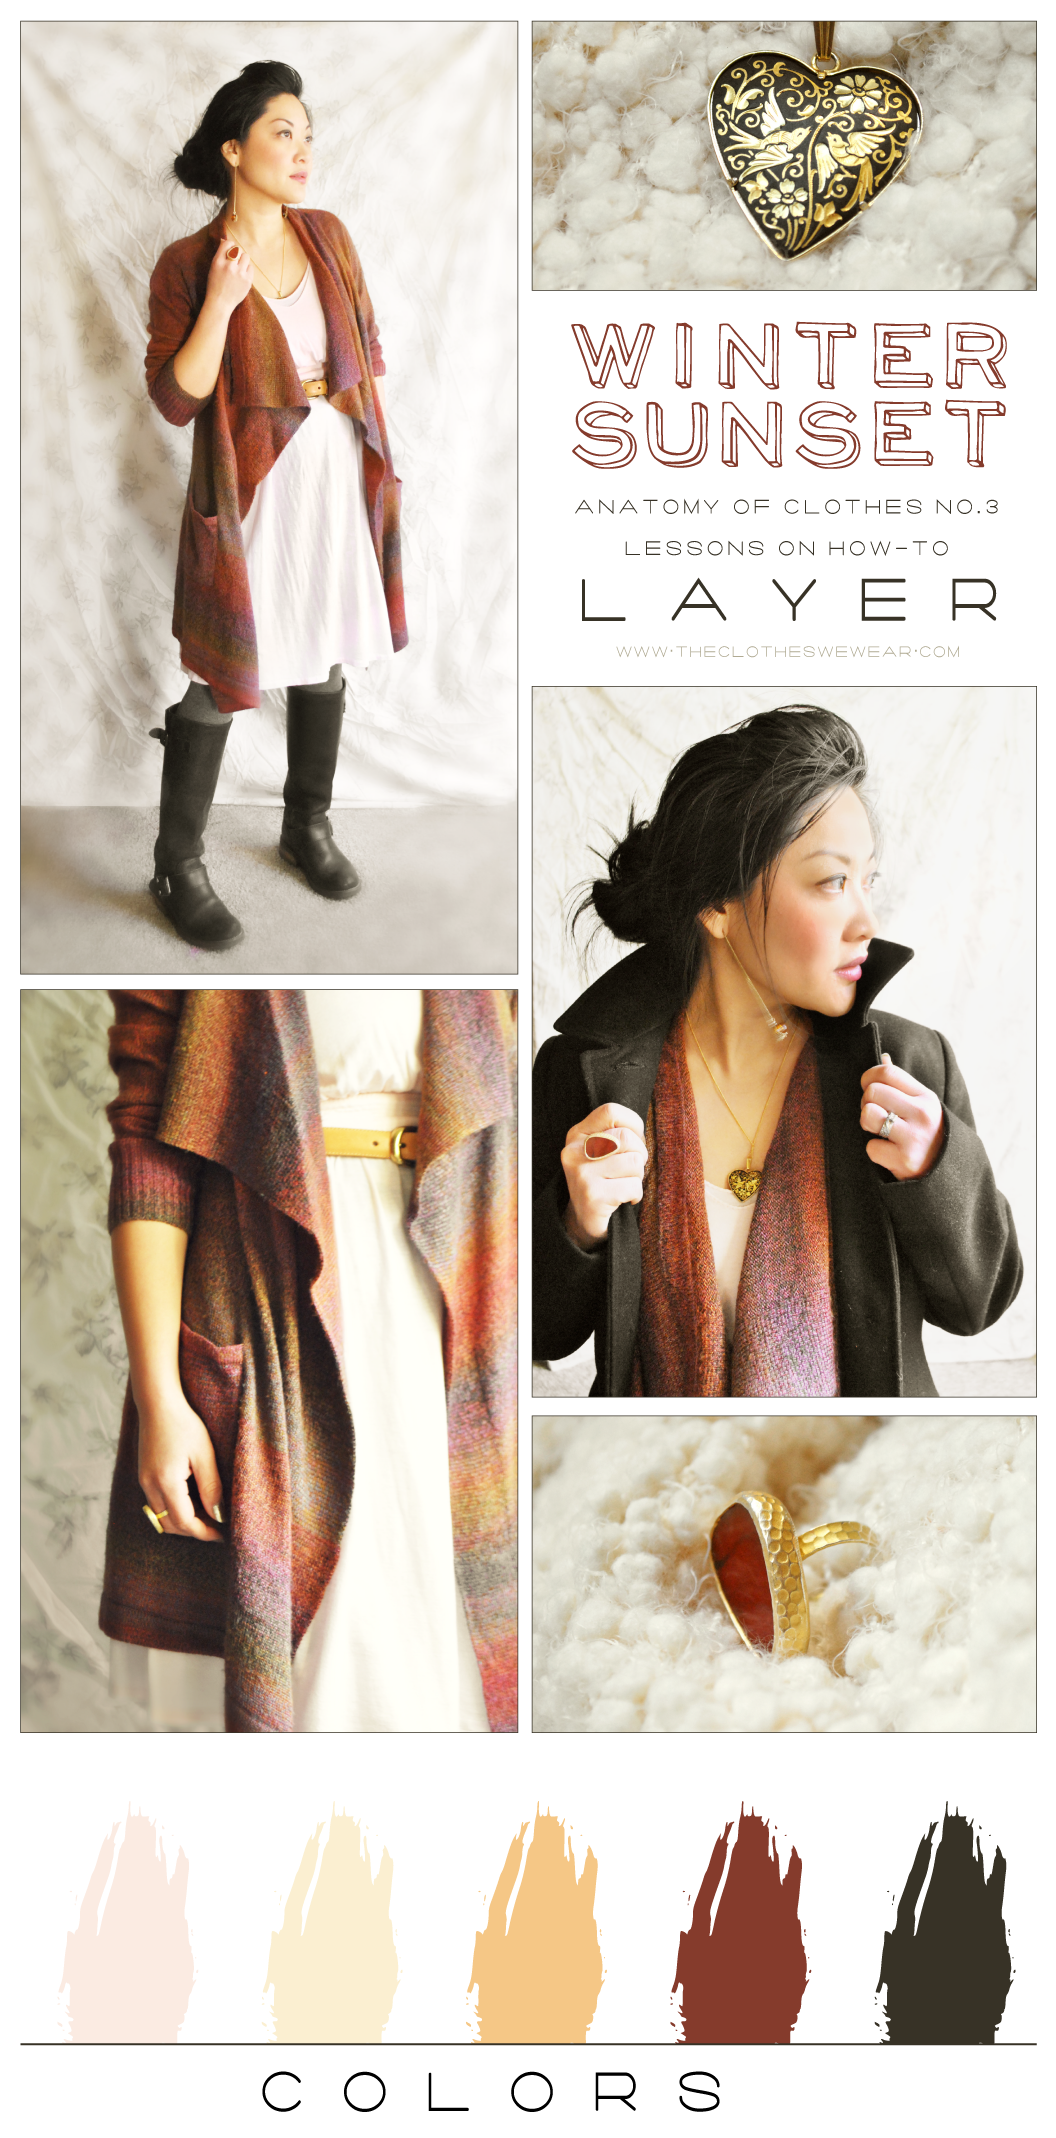 Anatomy of Clothes No. 3 - How-To Layer